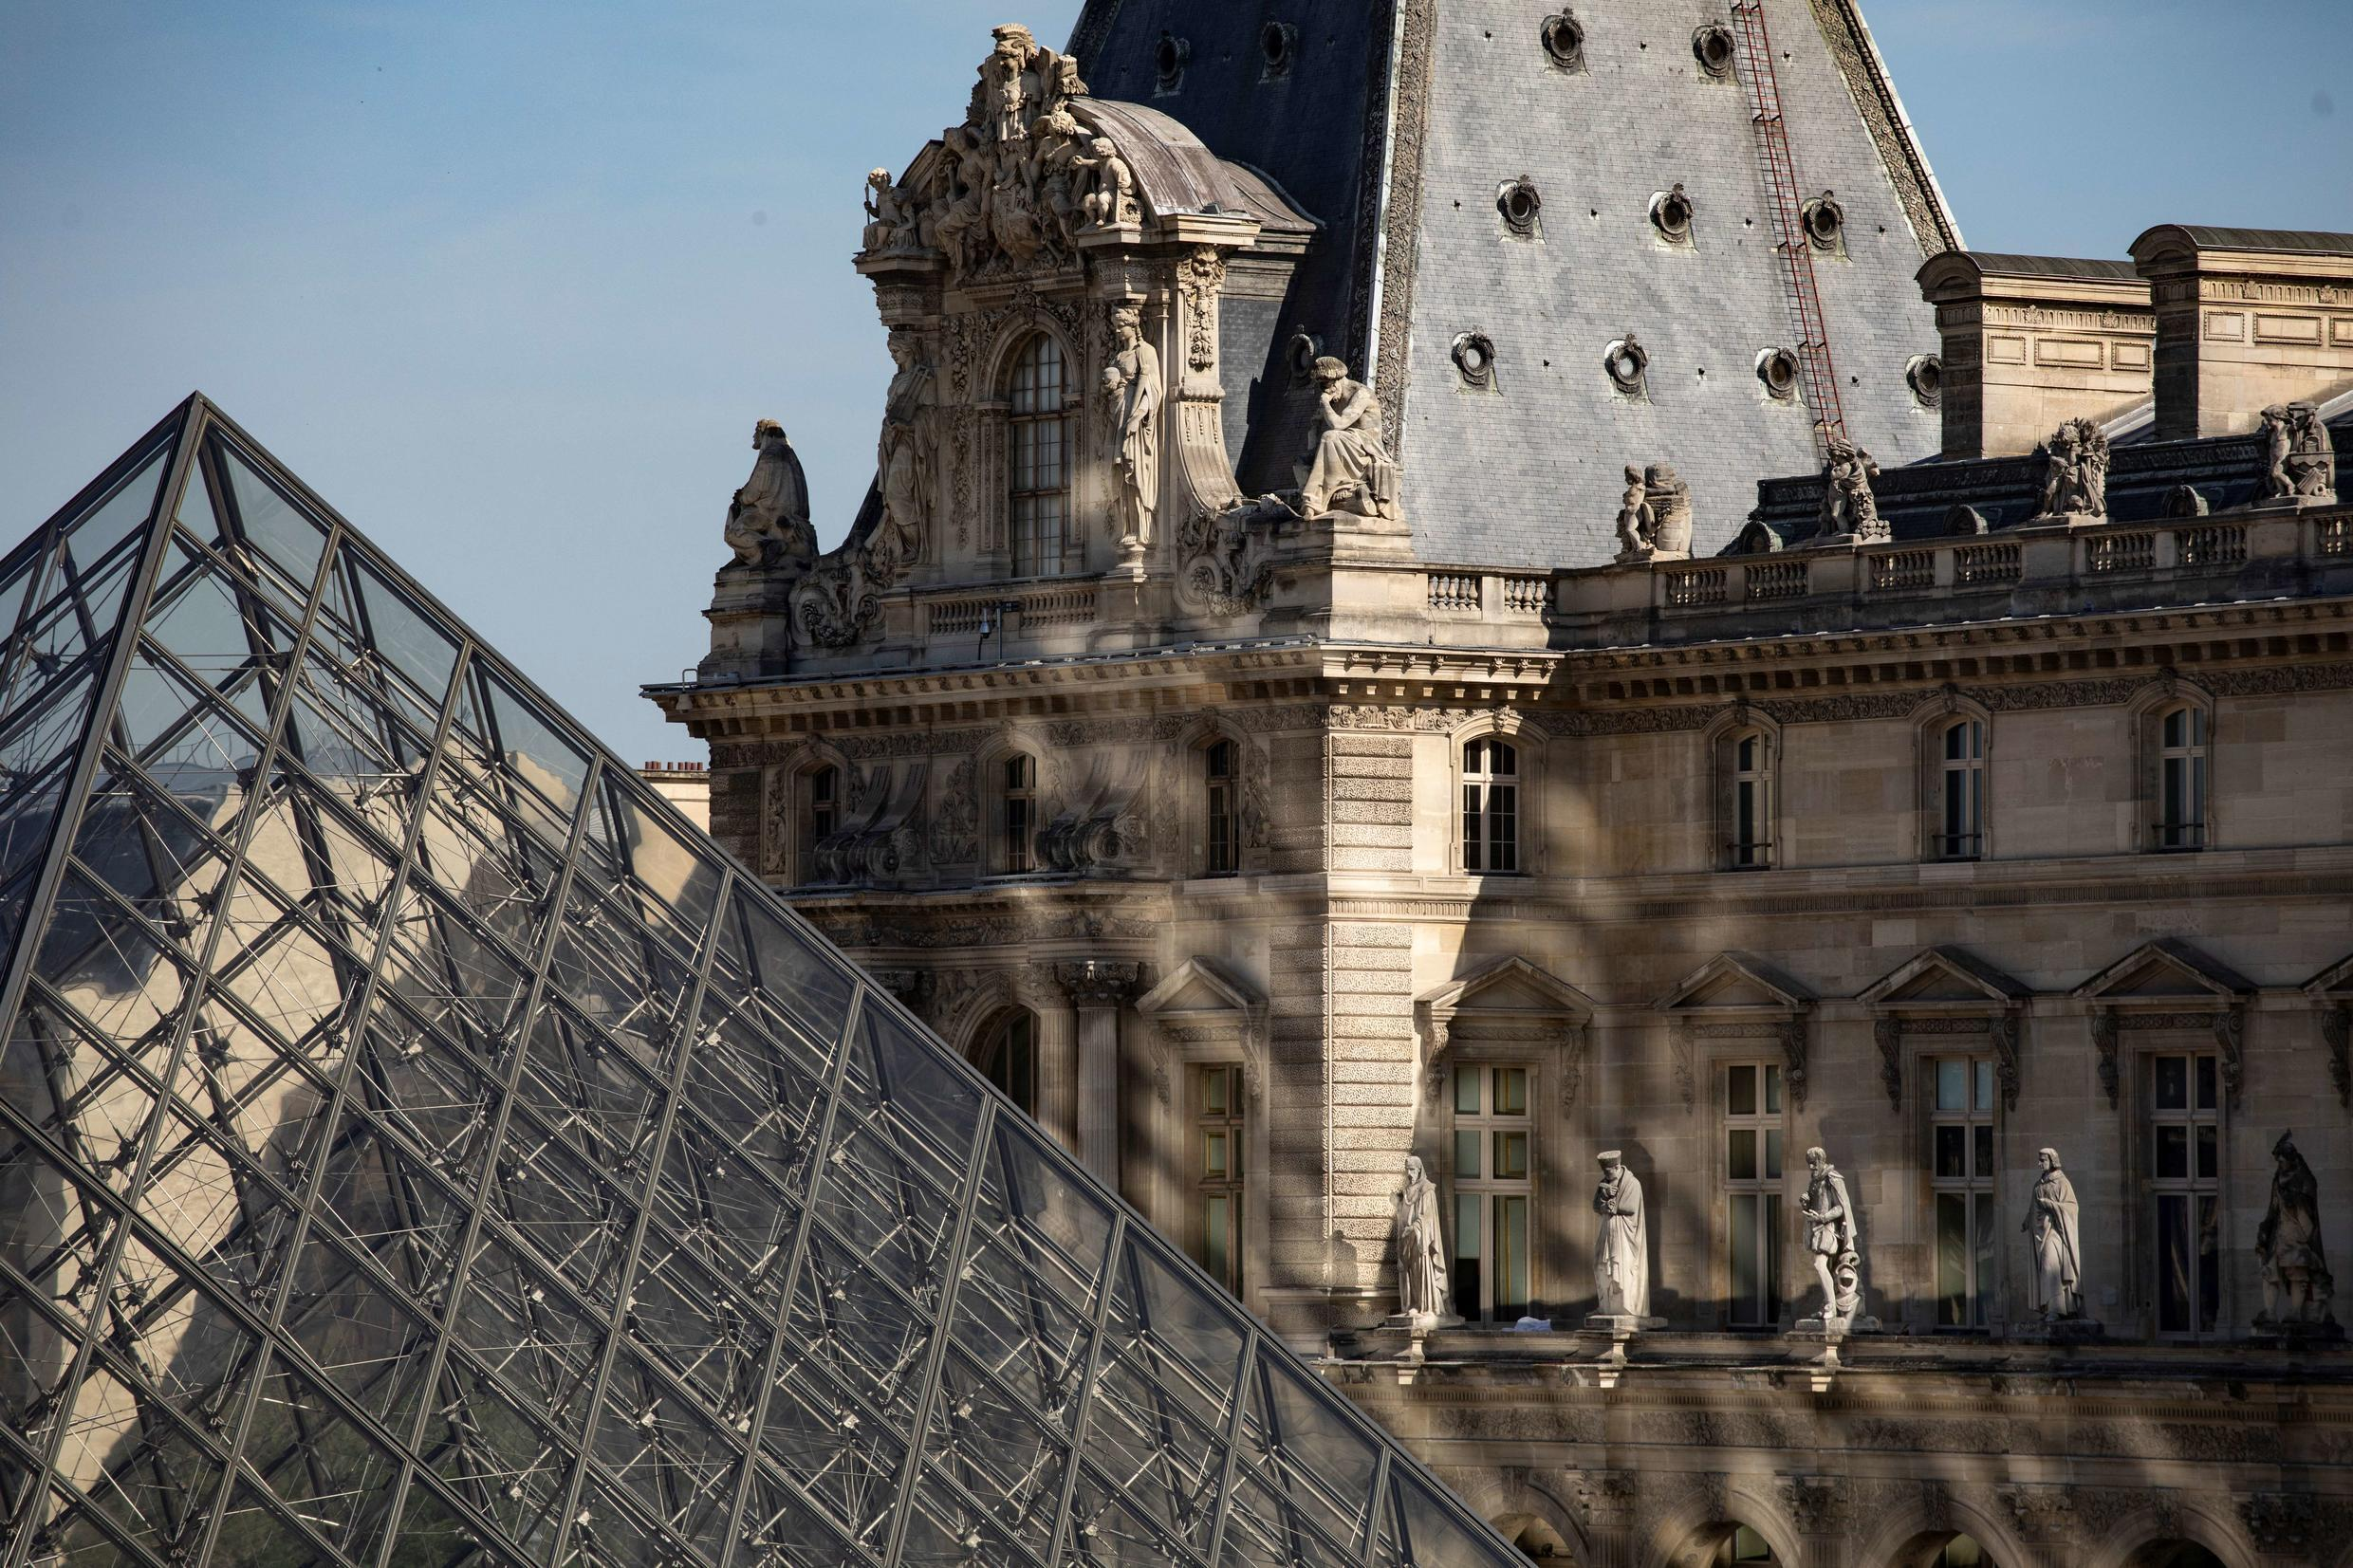 The Louvre has lost more than €40 million in ticket sales during the near-four-month lockdown.